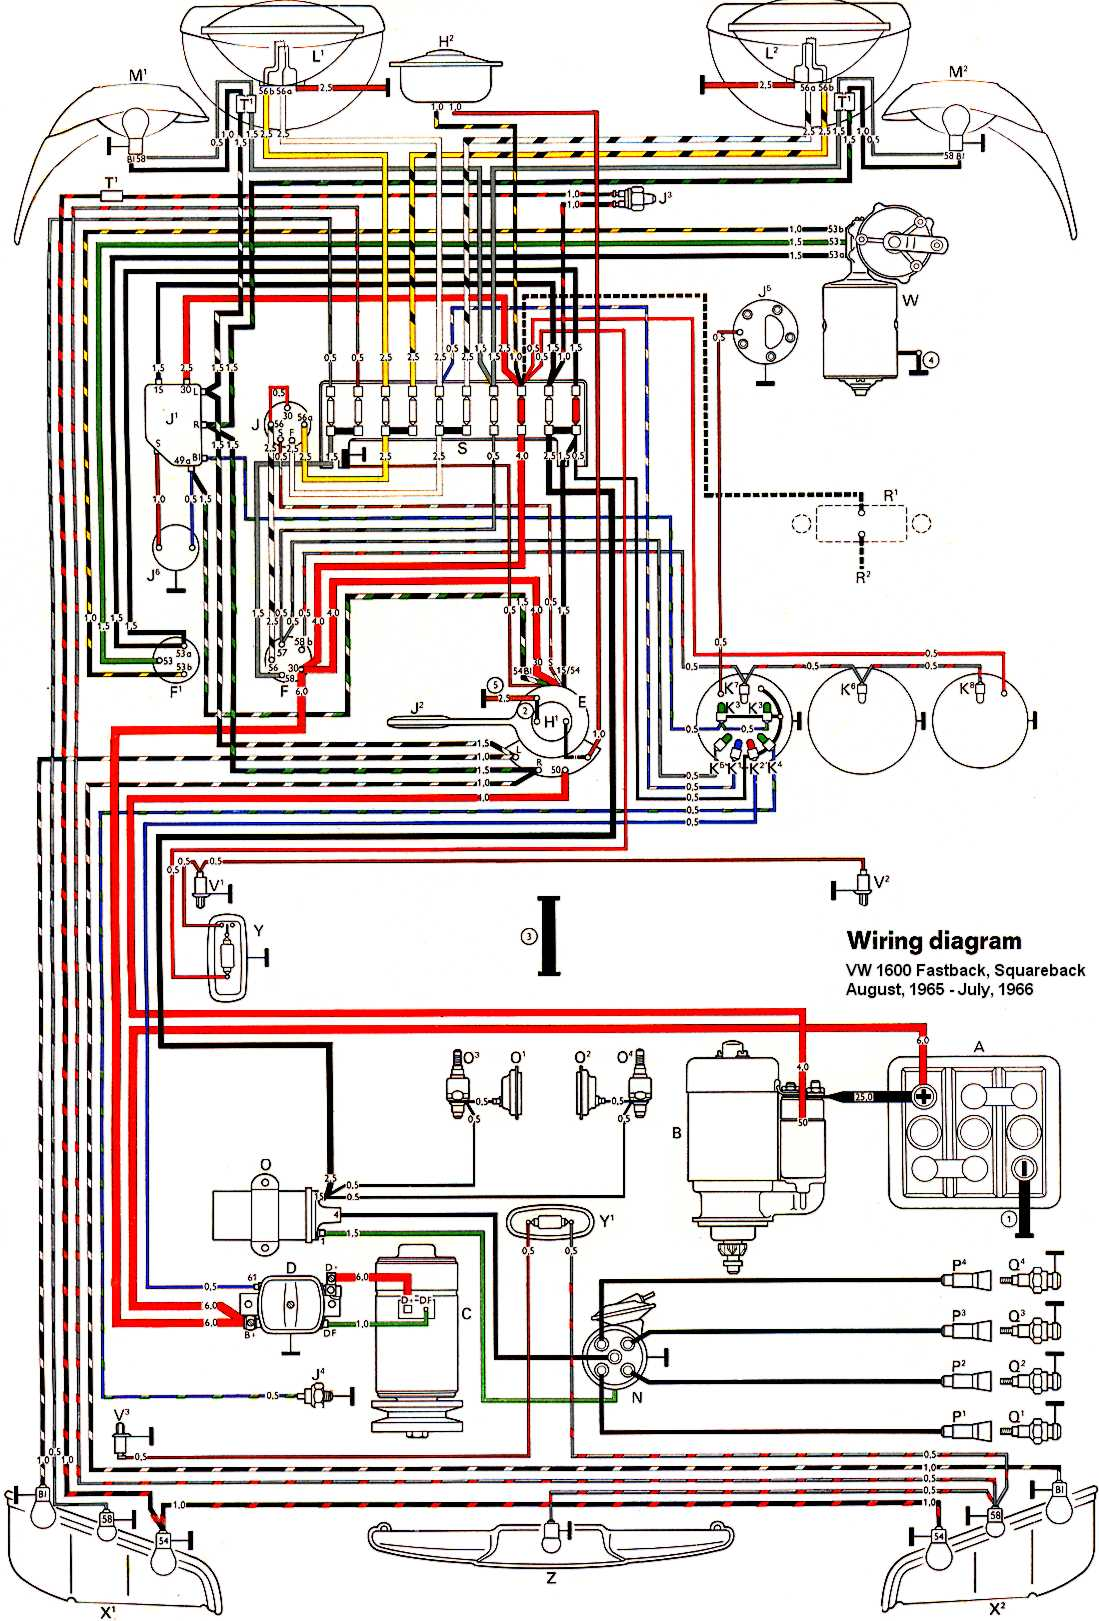 ledningsdiagram in color 1964 vw bug beetle convertible the